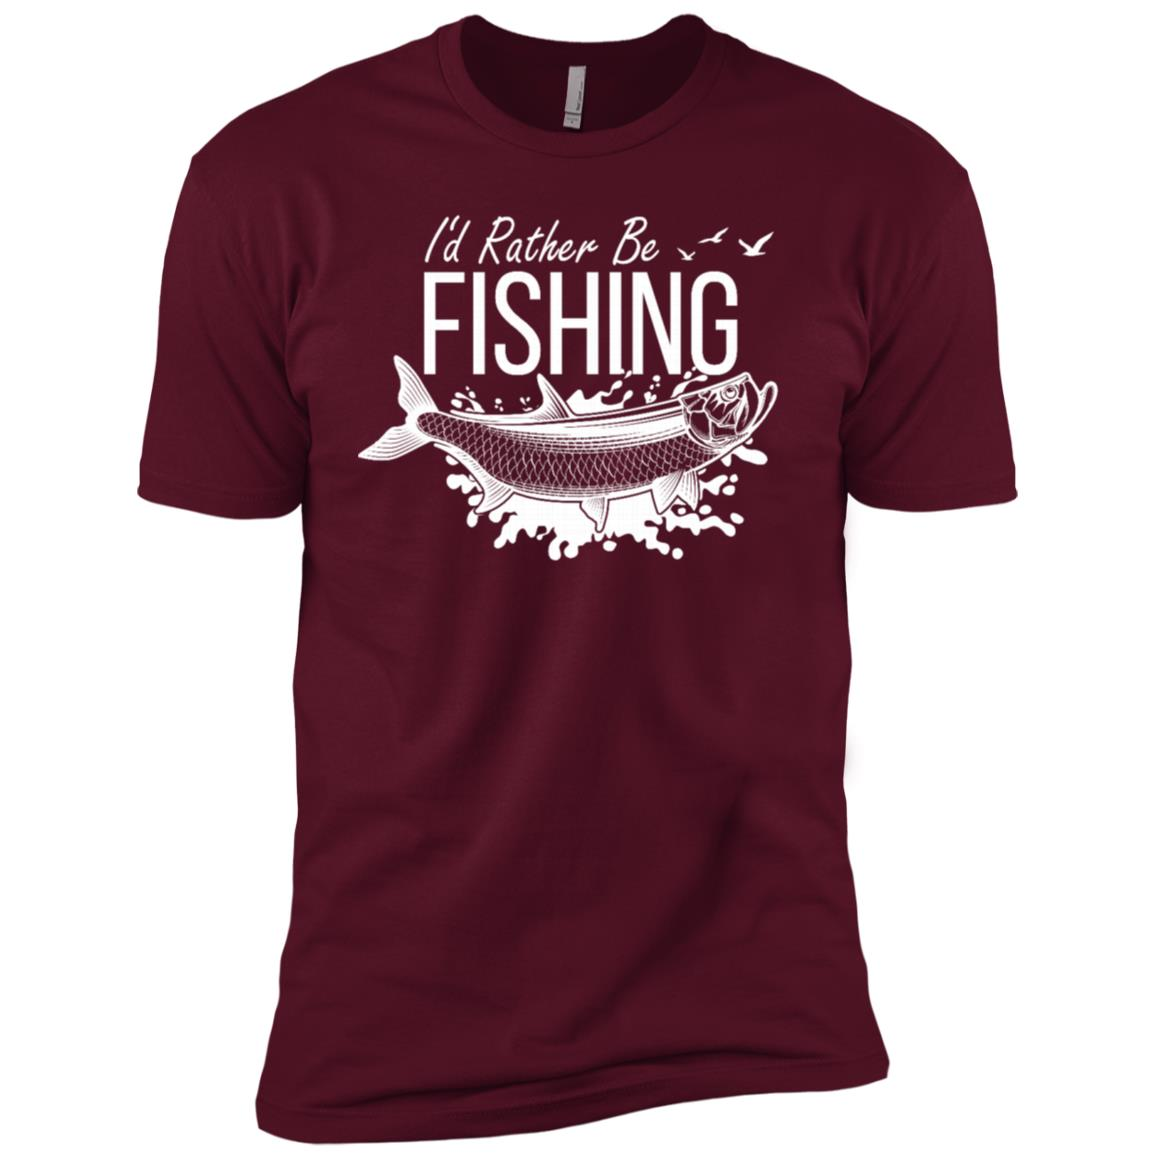 I'd Rather Be Fishing Camping Funny Camping -4 Men Short Sleeve T-Shirt